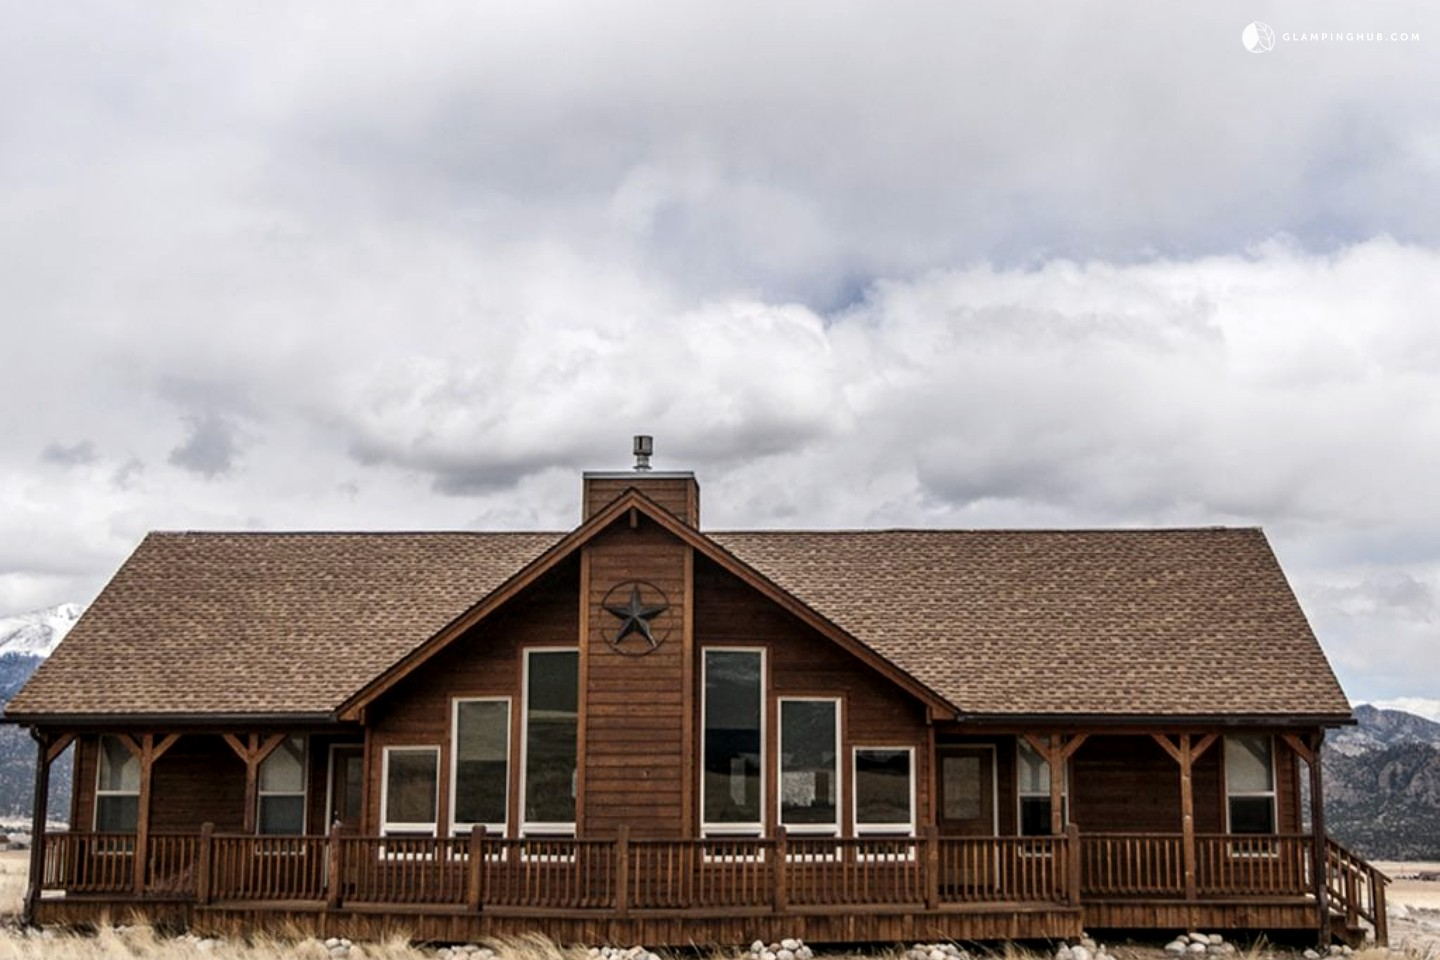 Luxury cabin getaway to buena vista colorado for Buena vista co cabins rentals